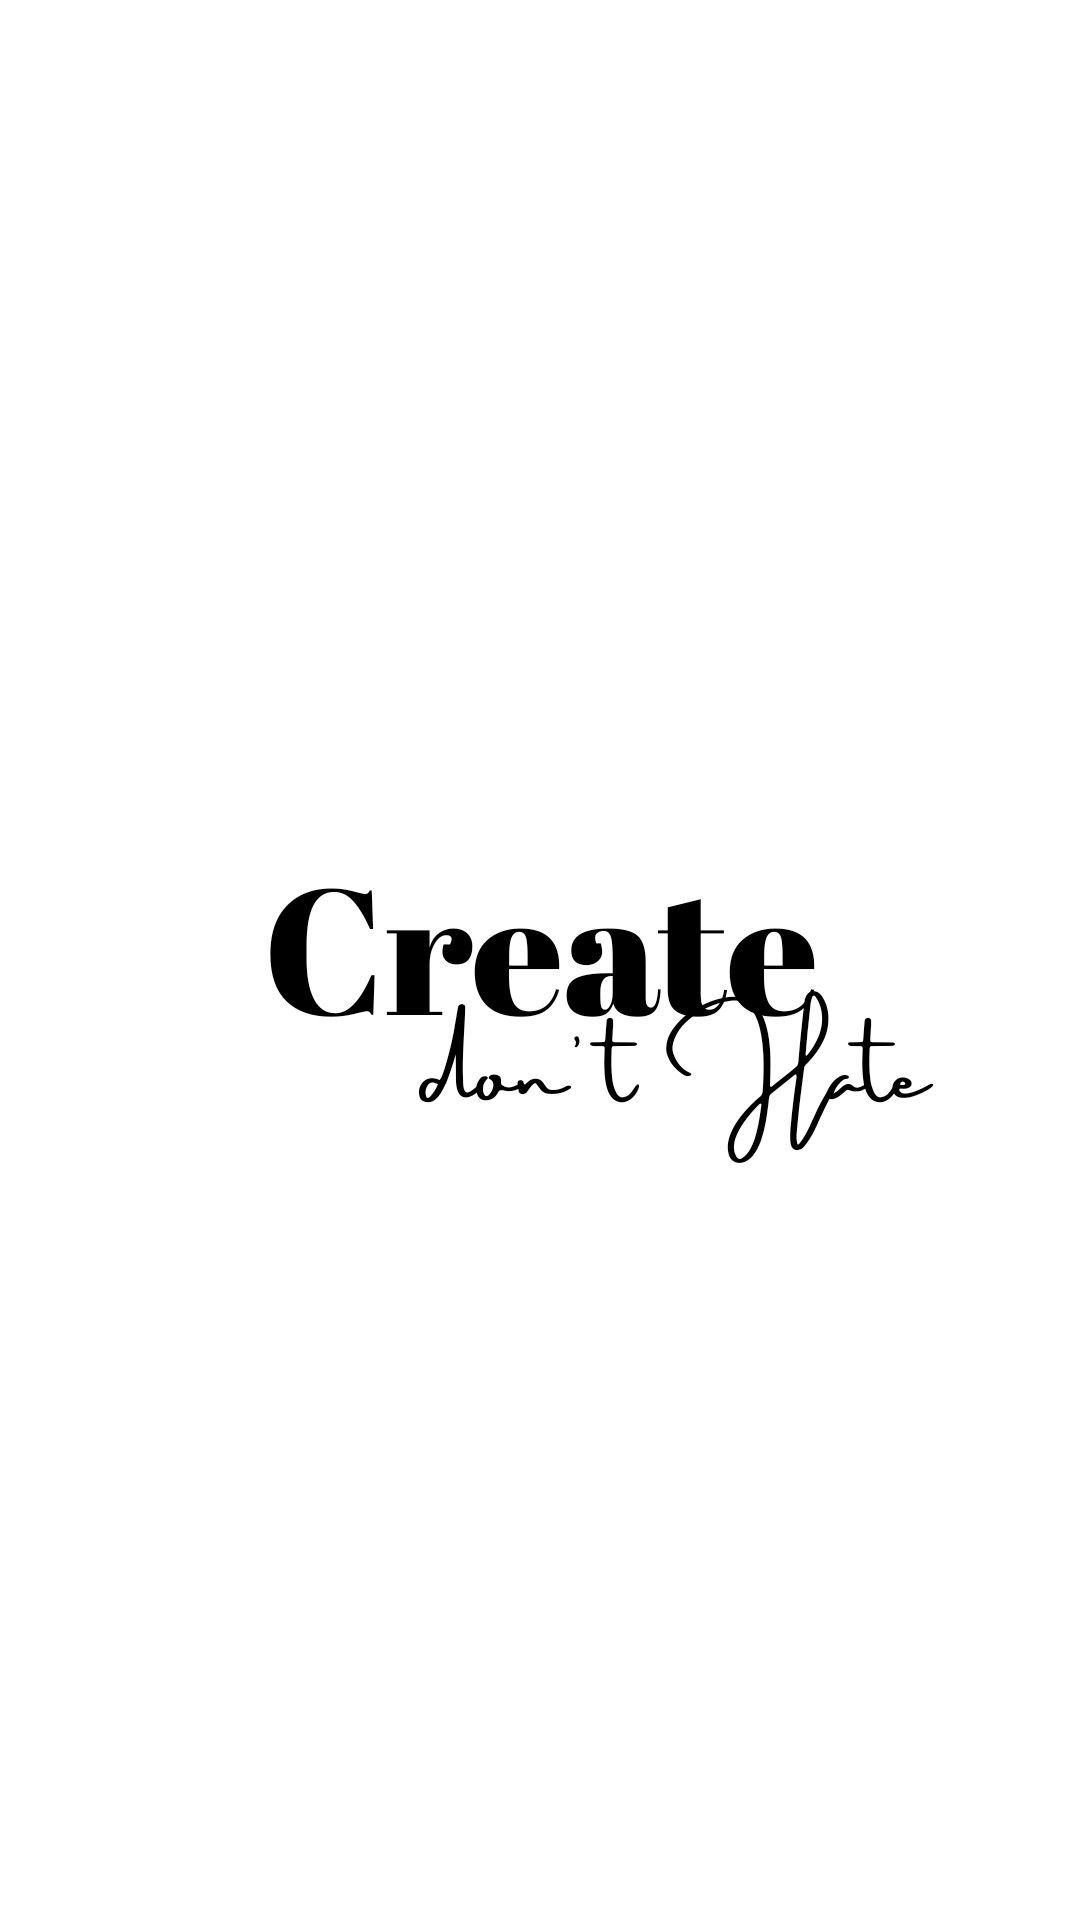 Inspiring quote Quotes white White background quotes Cute 1080x1920